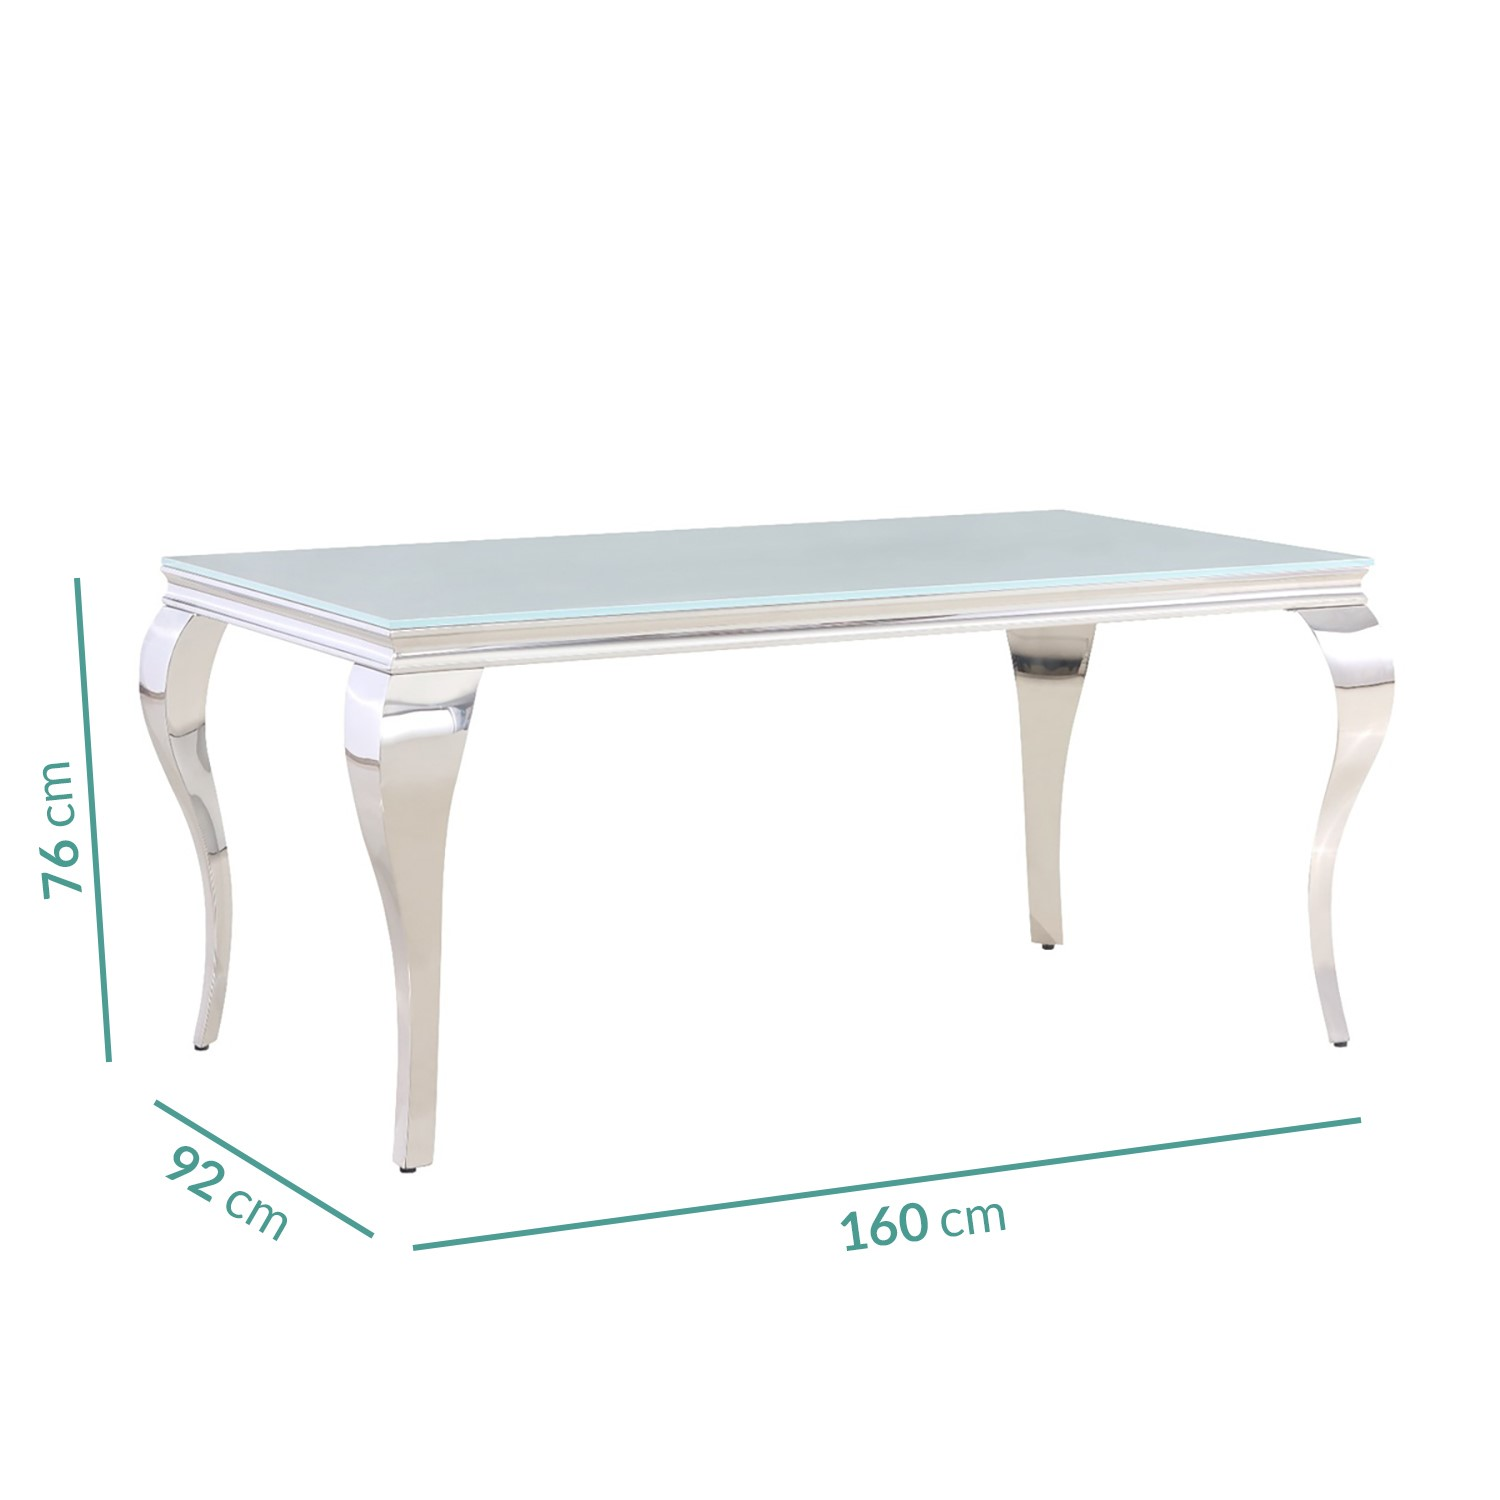 jade boutique mirrored dining table with white glass seats 6 160cm